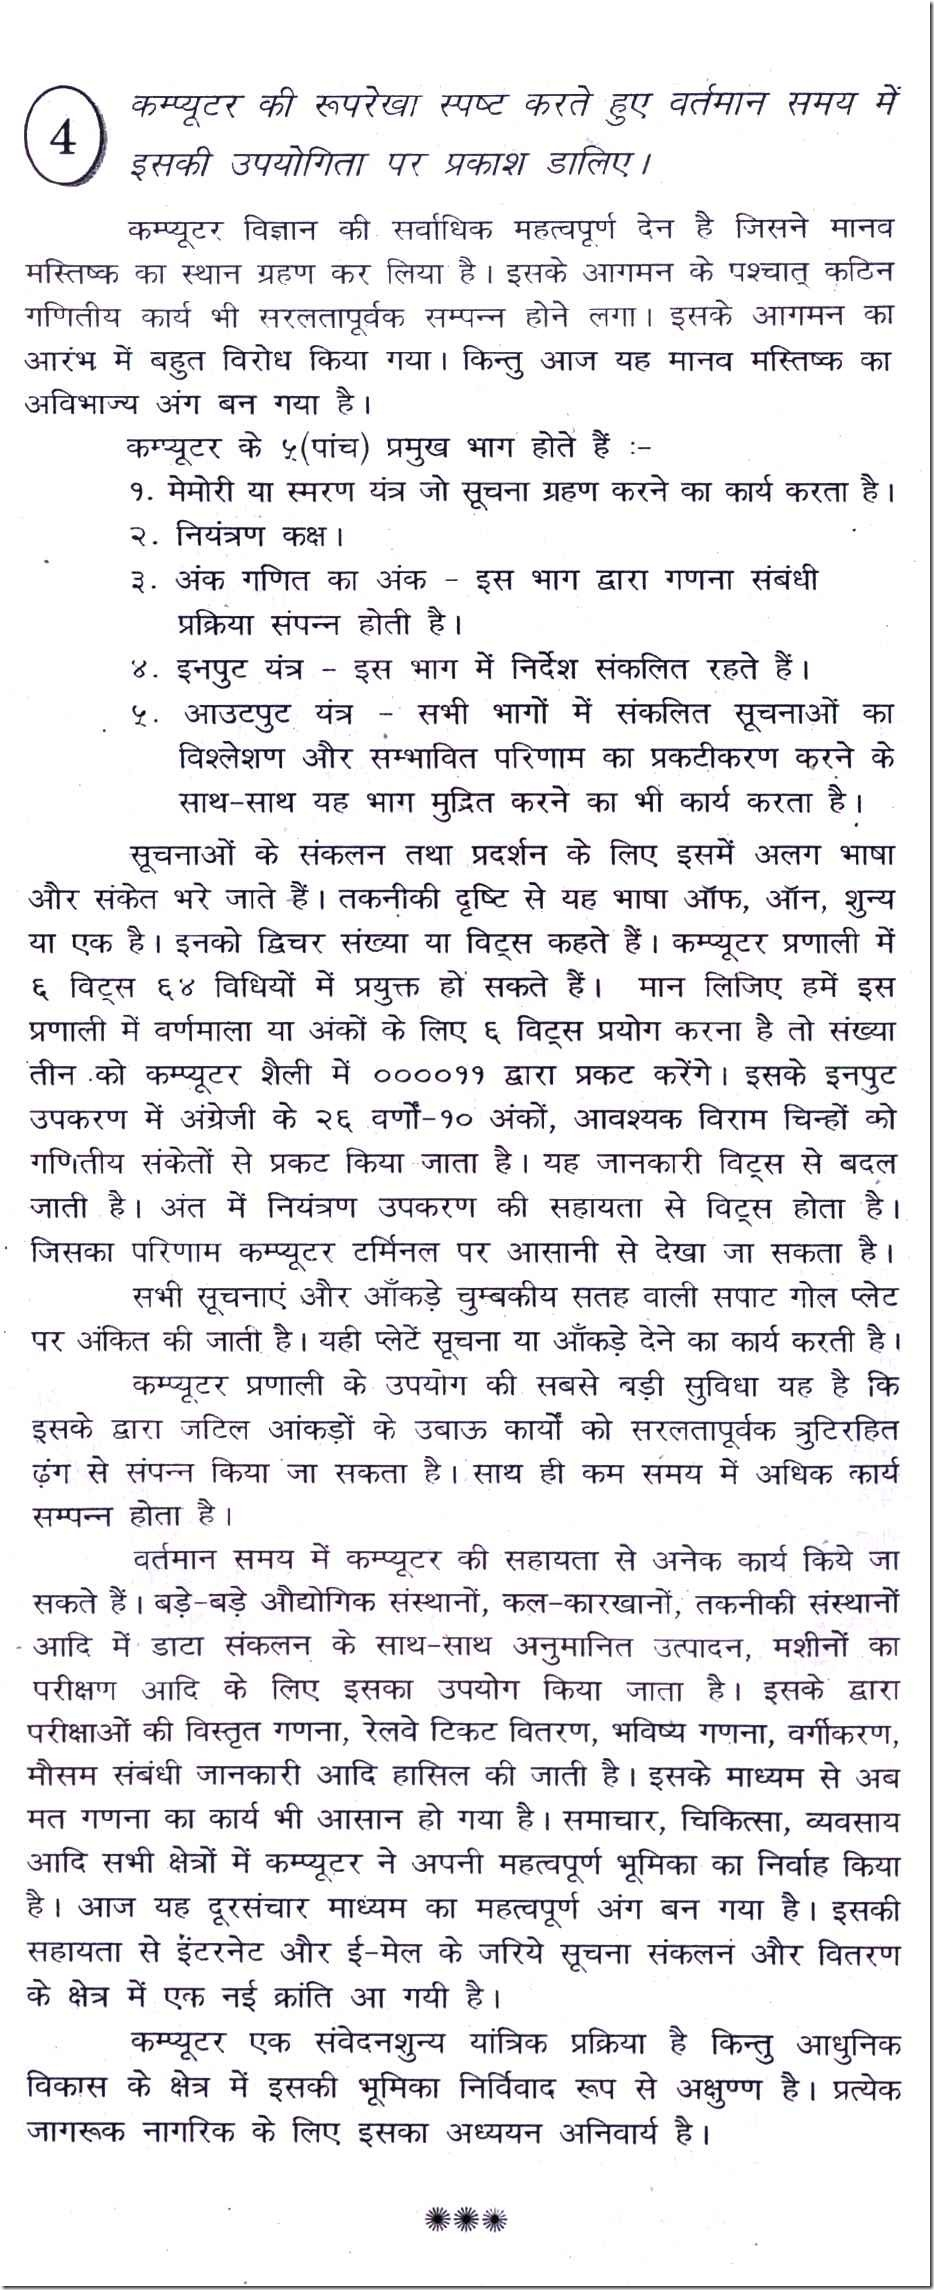 014 Kk0034 Thumb Advantage And Disadvantage Of Science Essay Shocking Advantages Disadvantages Pdf In Hindi English